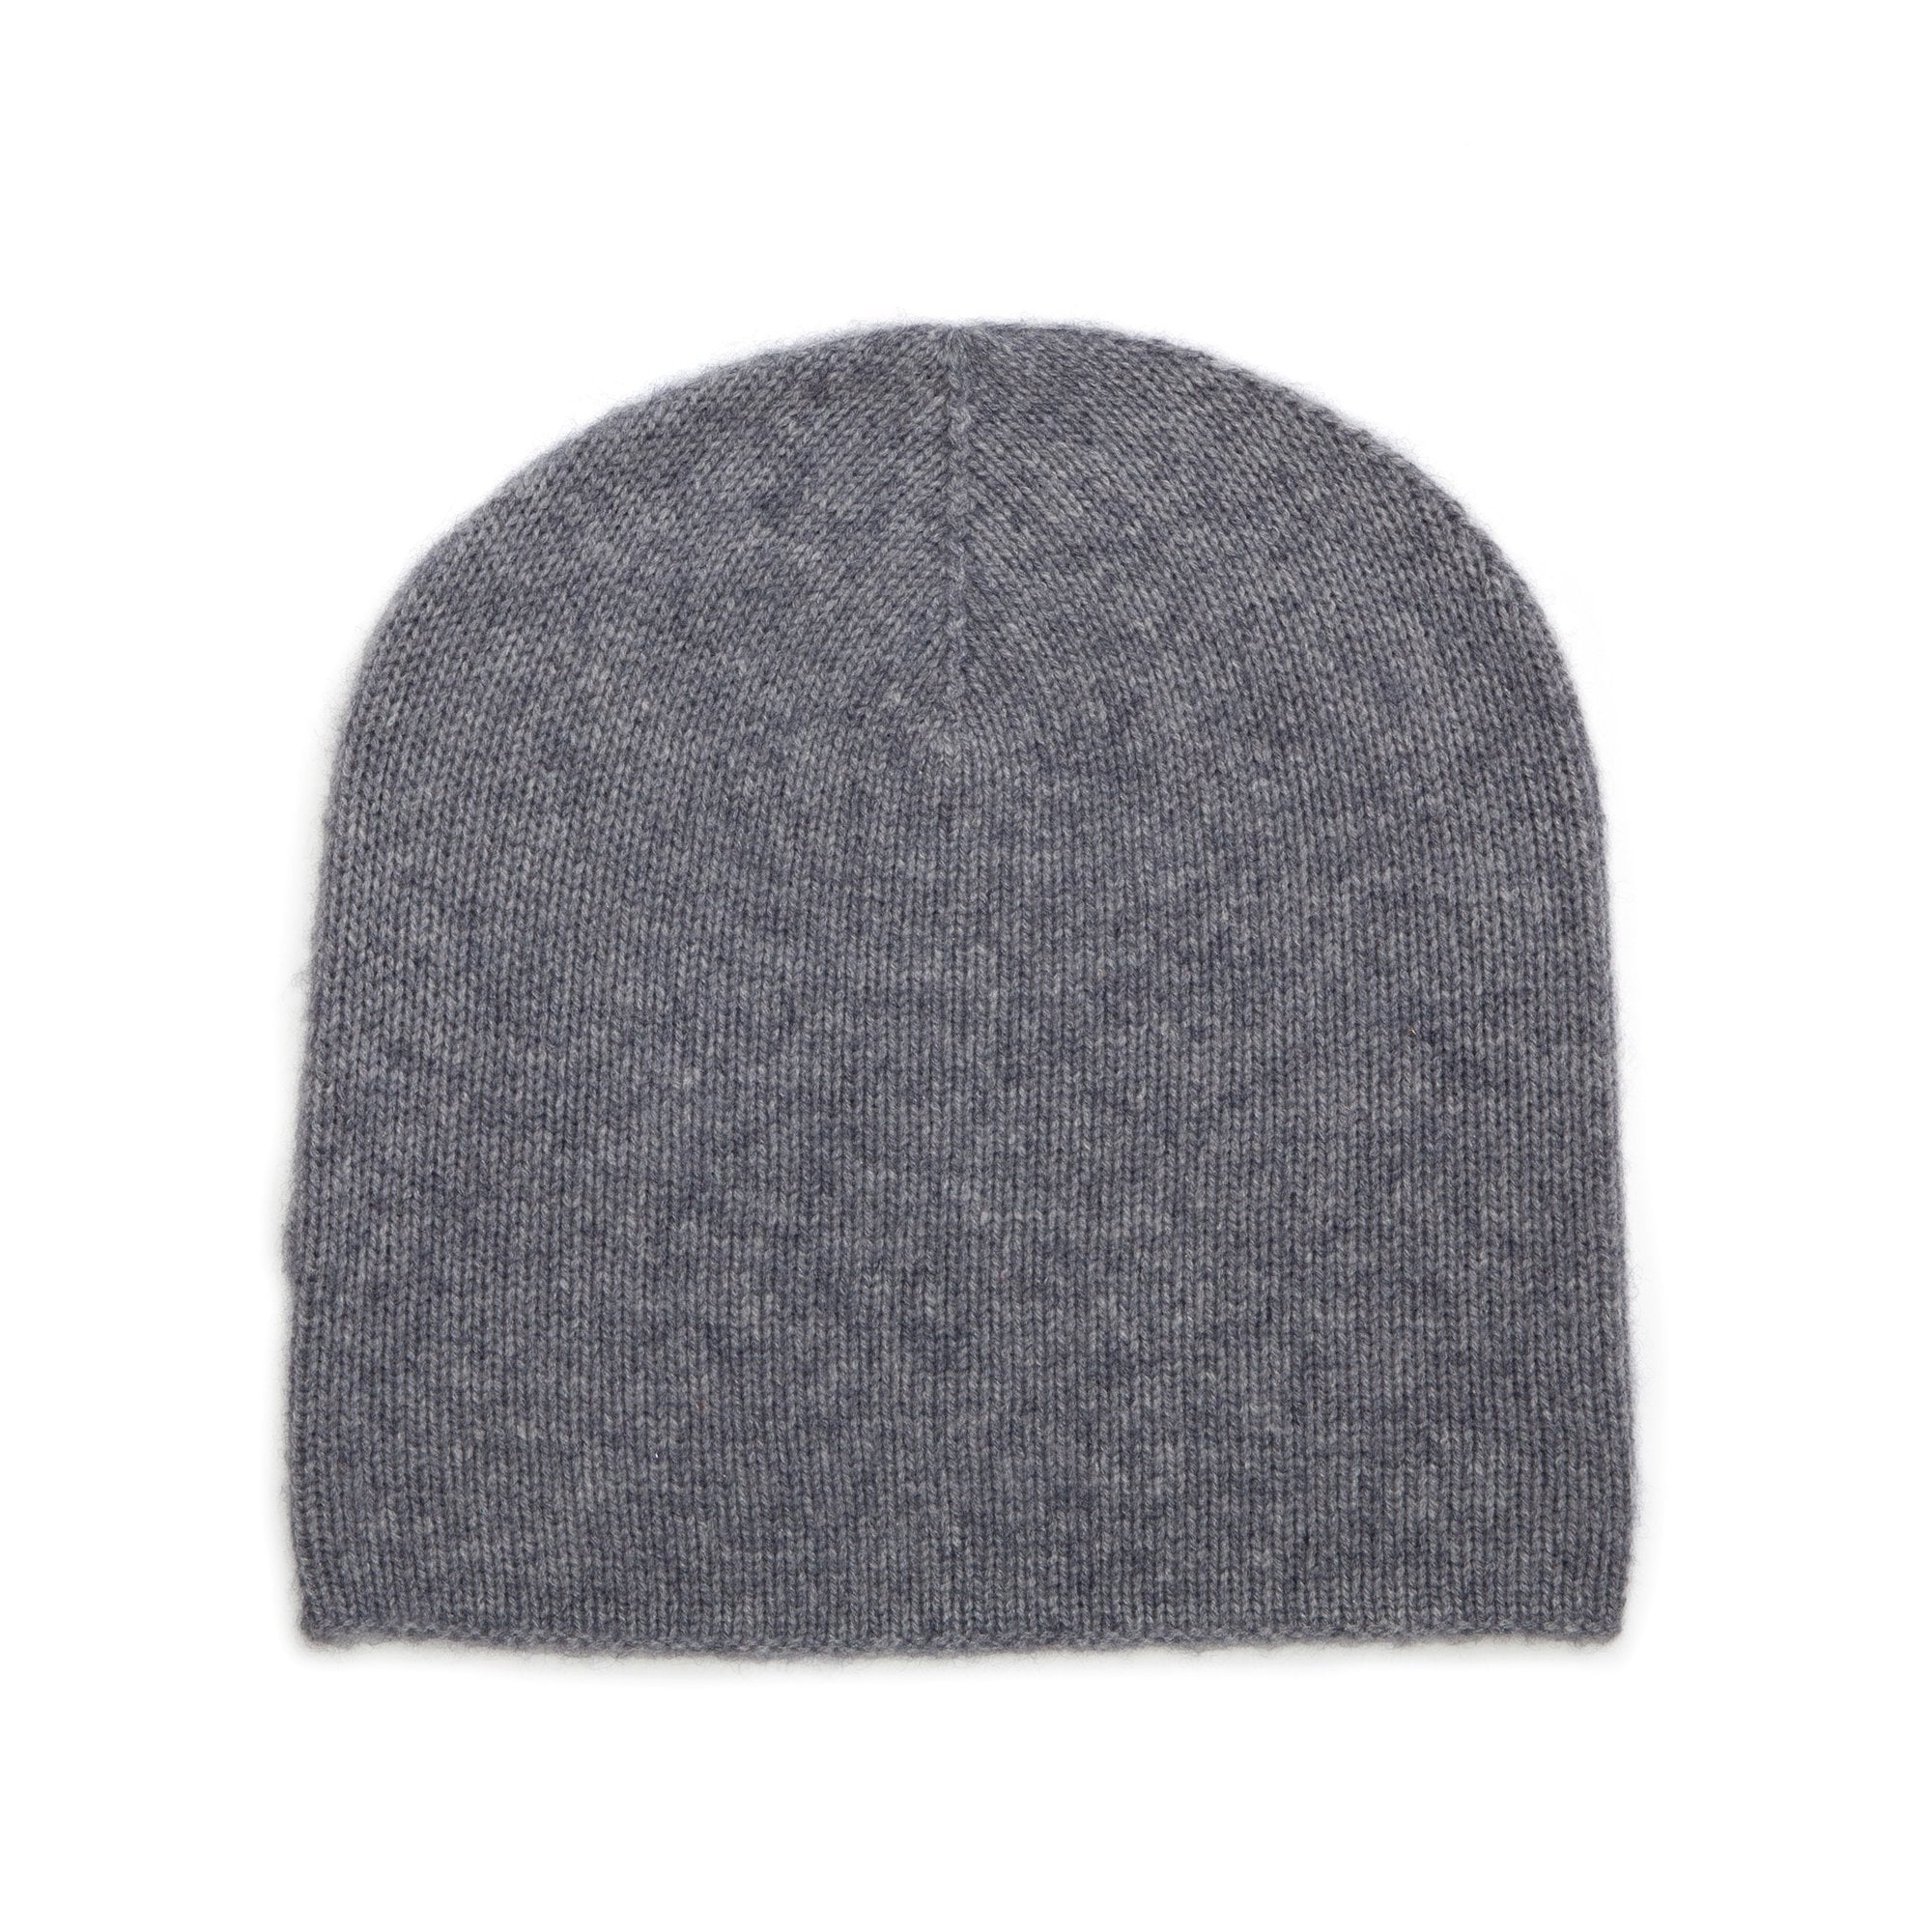 Somerville Scarves Cashmere Beanie Hat in Pale Grey  570379cea93